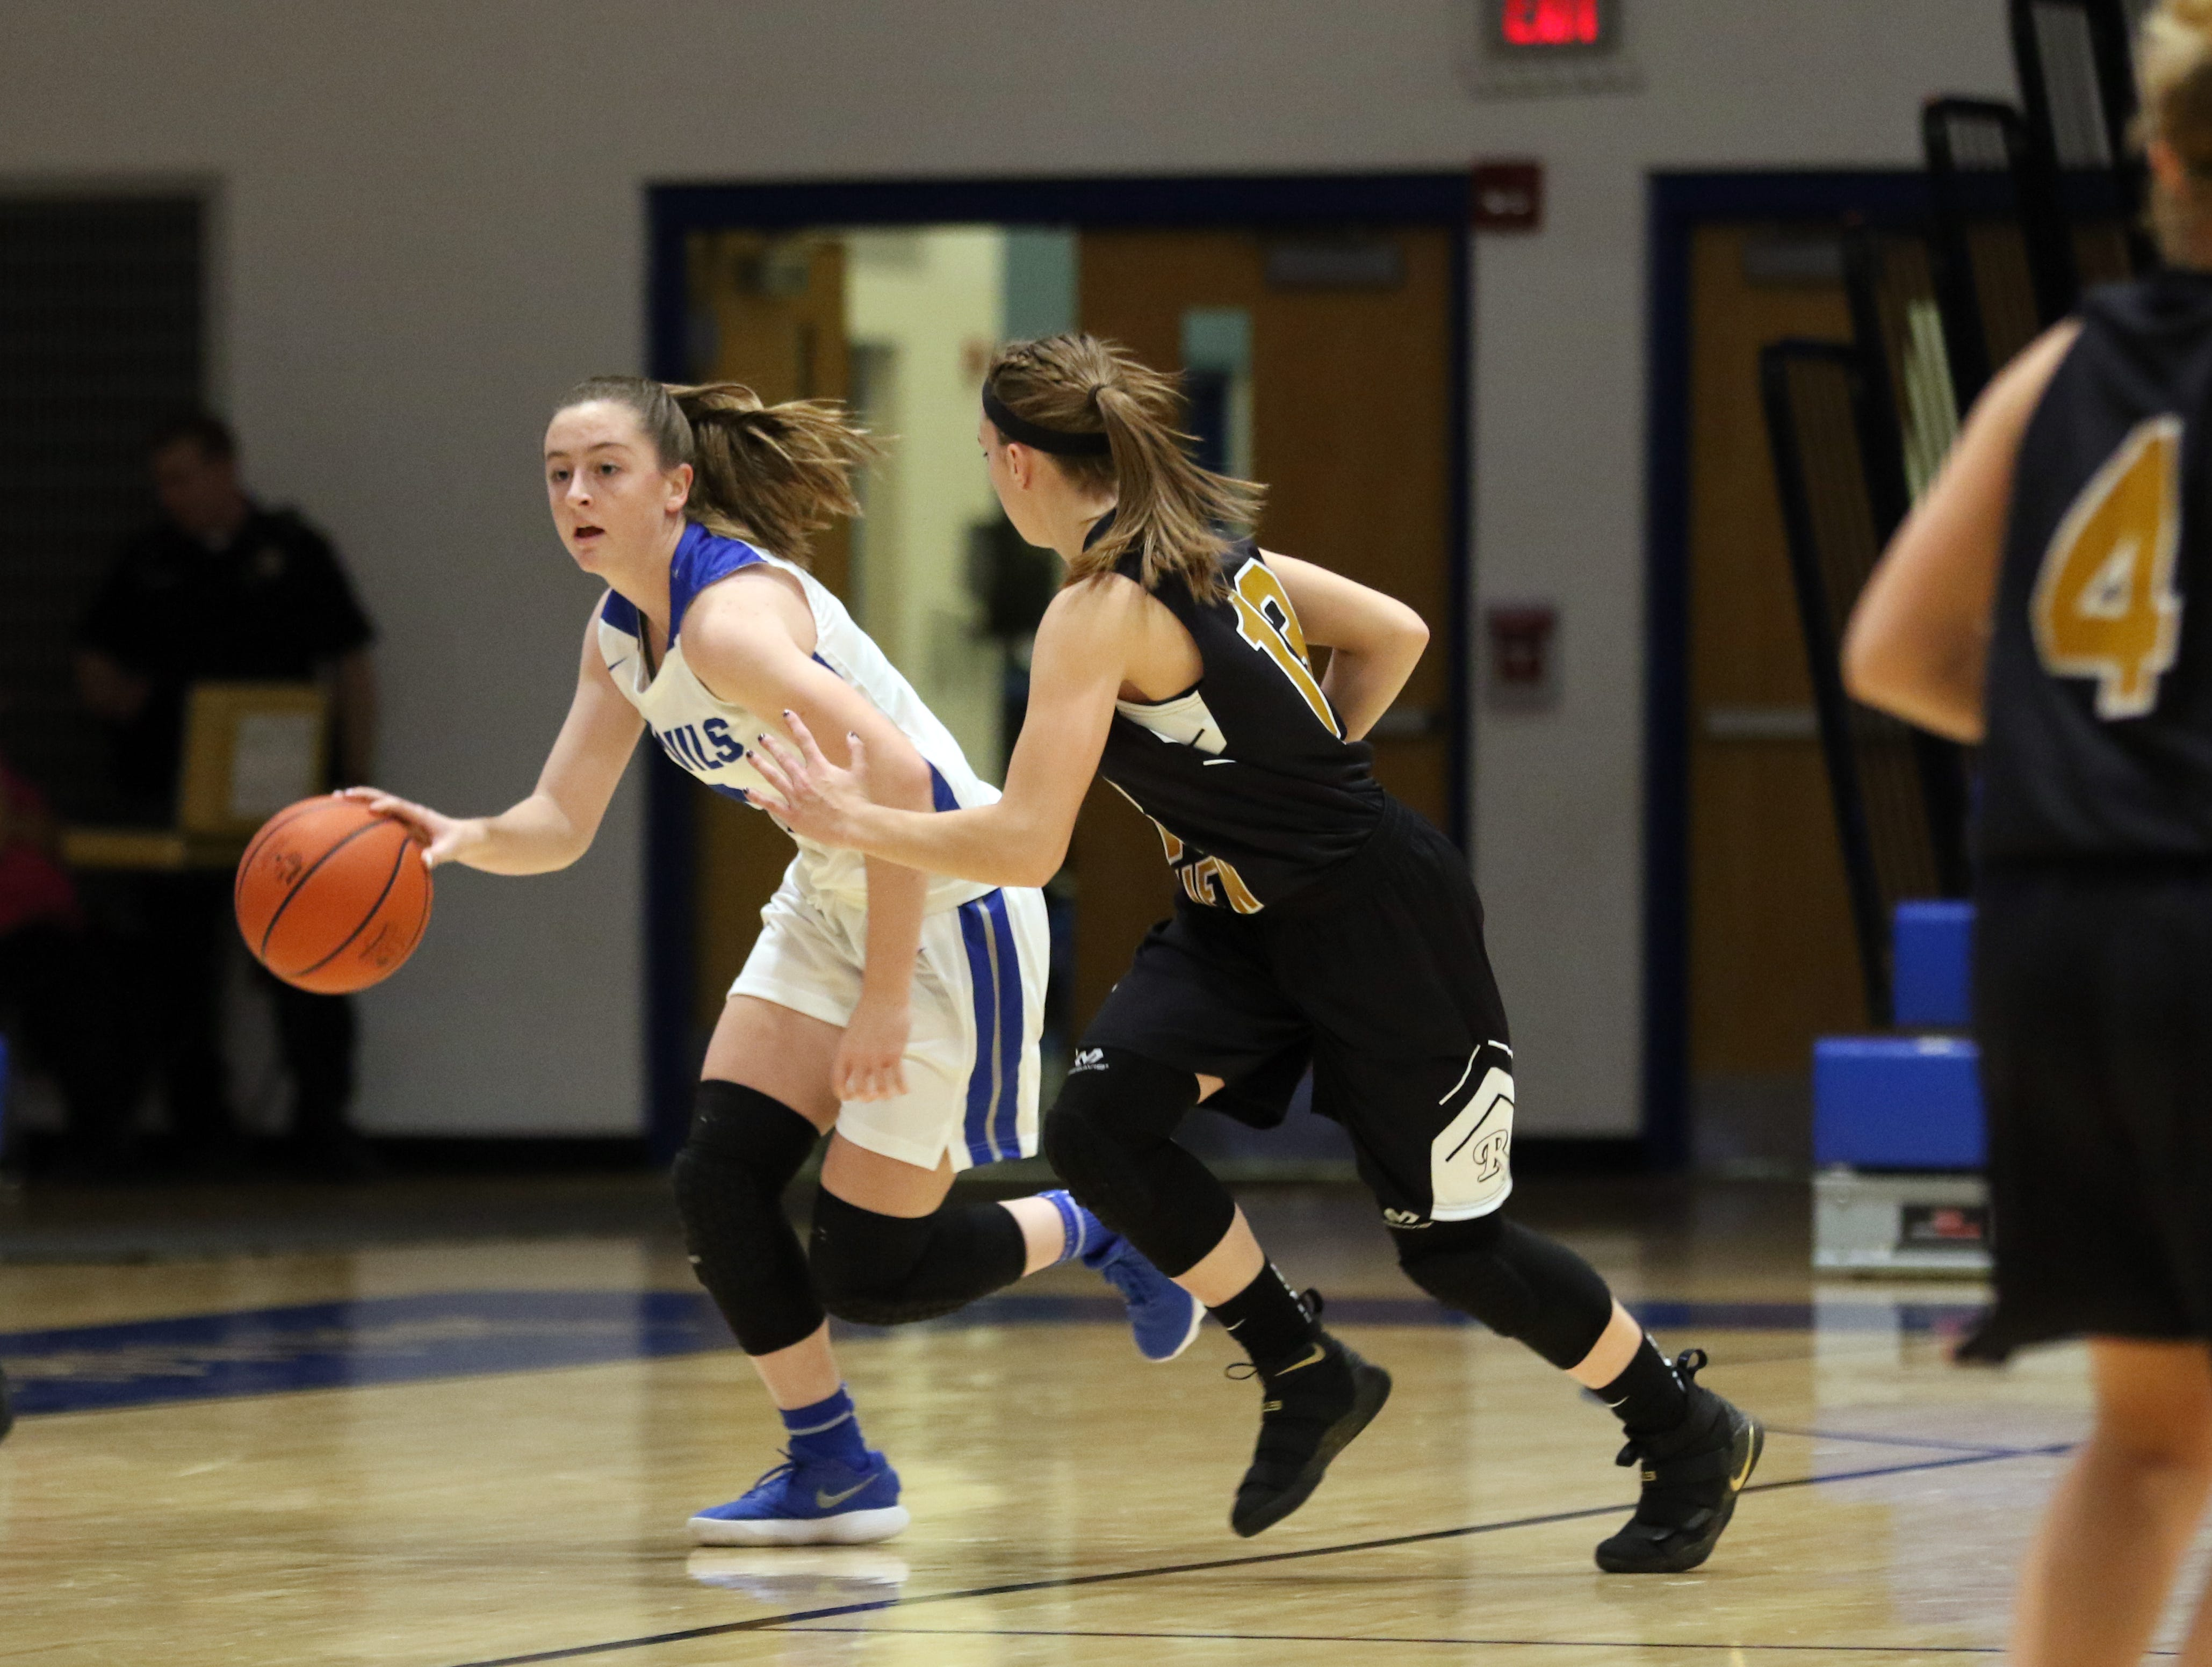 Zanesville's Madison Winland moves with the ball against River View.